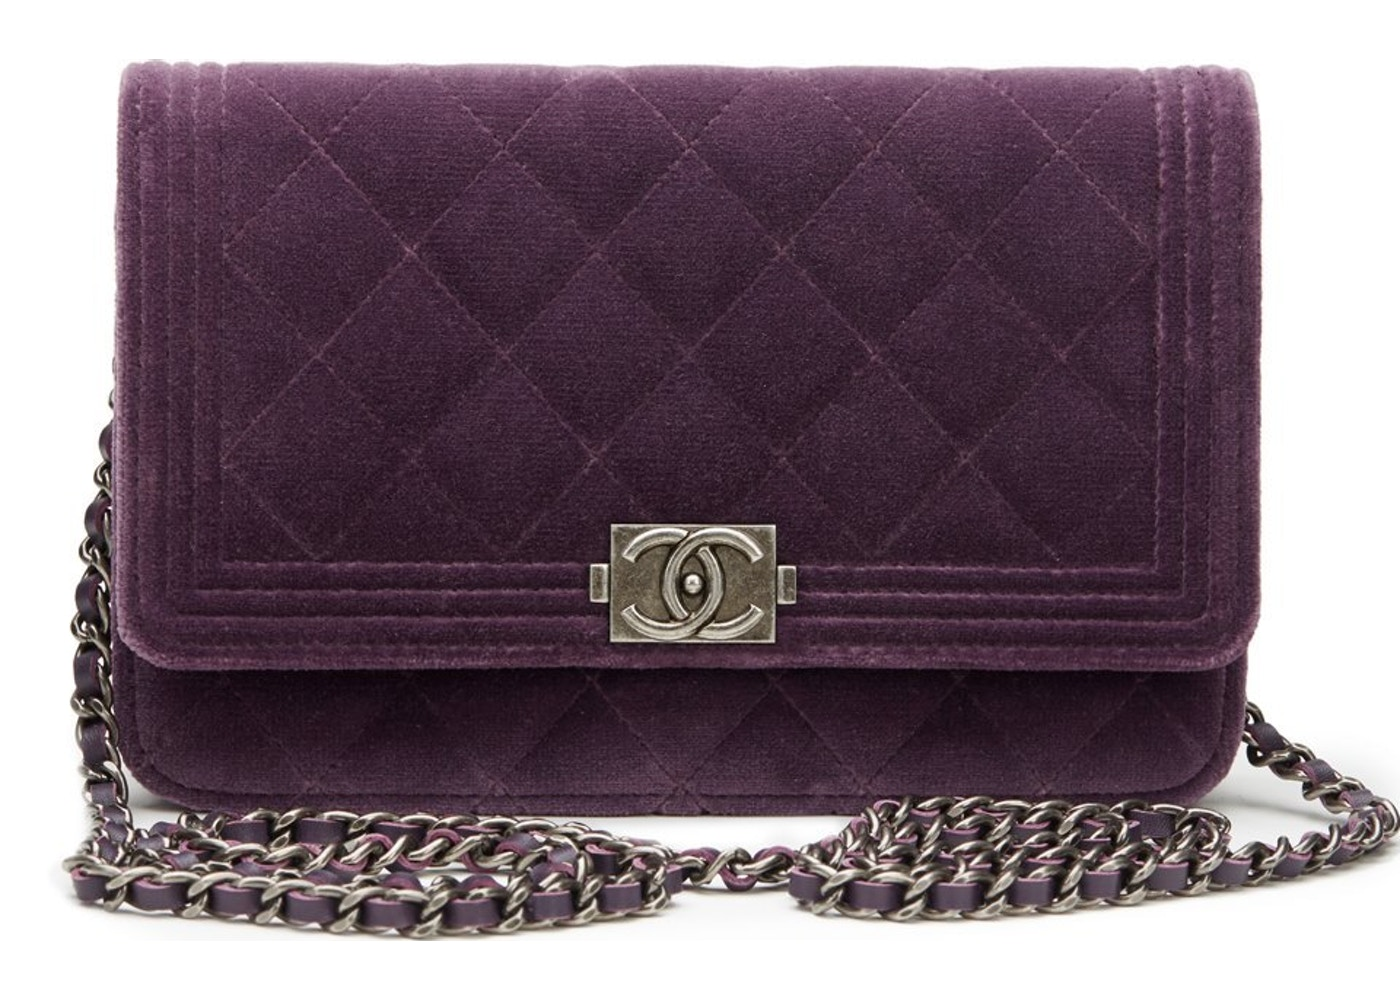 97b3d364e7fe3f Chanel Boy Wallet On Chain Quilted Violet. Quilted Violet